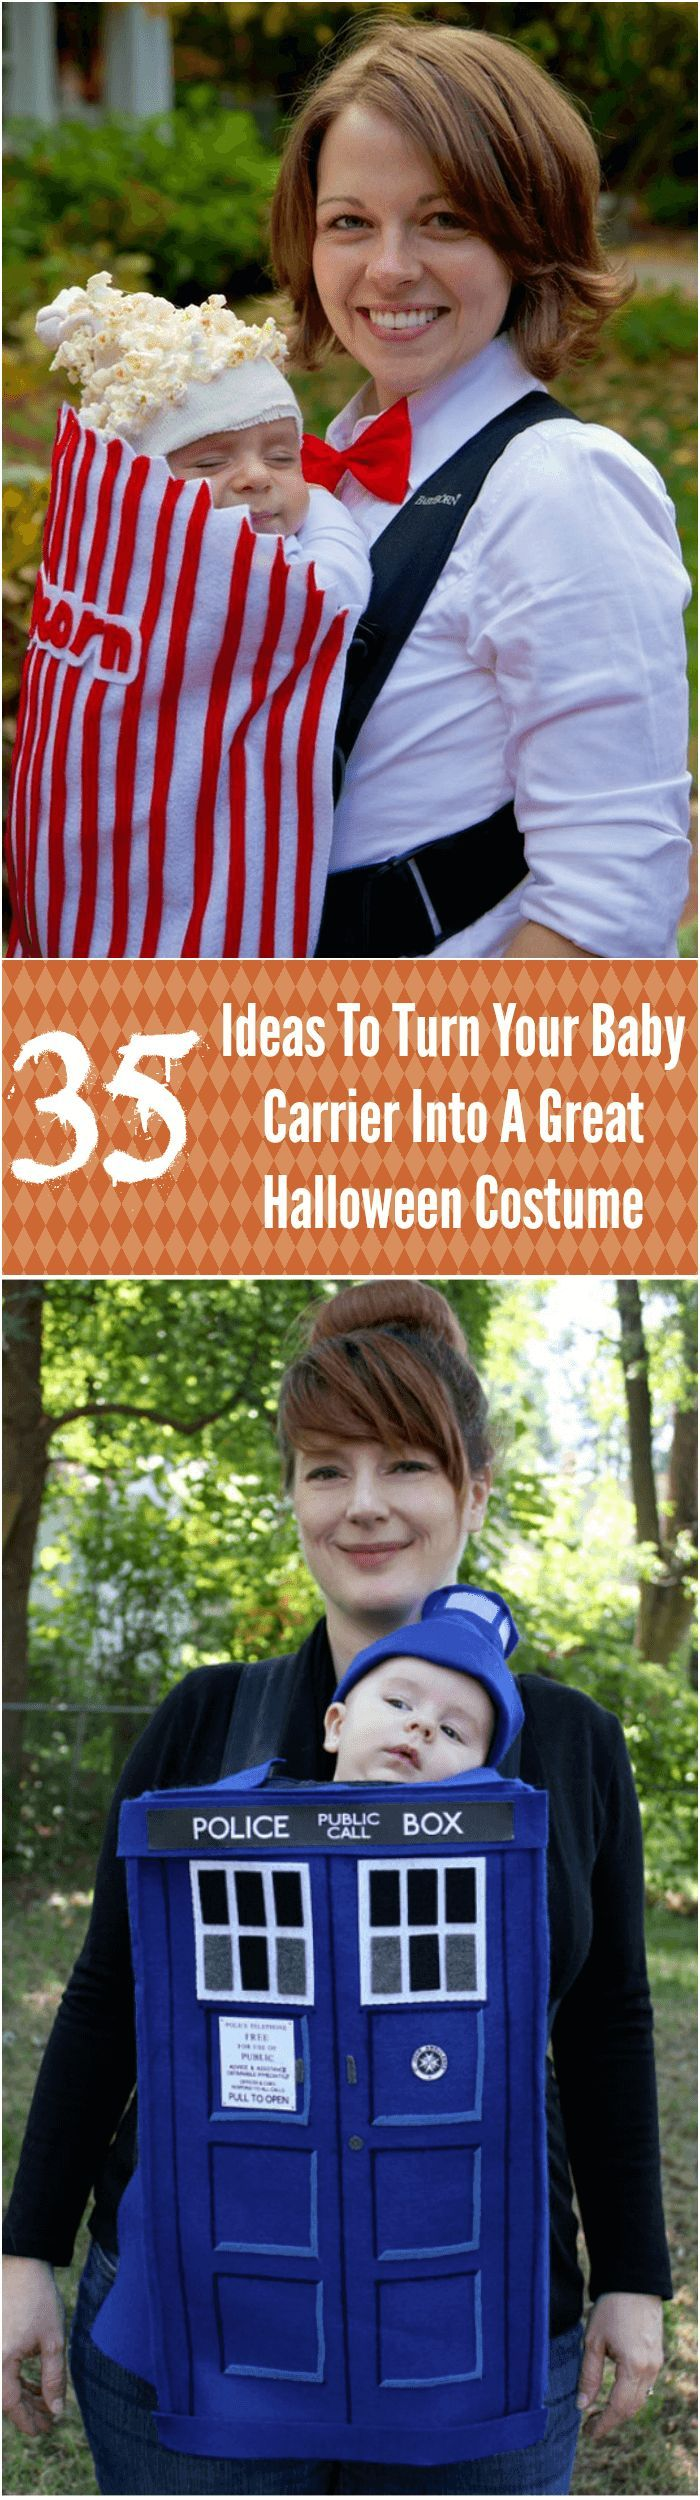 35 Ideas To Turn Your Baby Carrier Into A Great Halloween Costume #halloween #costumes #babies via @Mamabeeblog